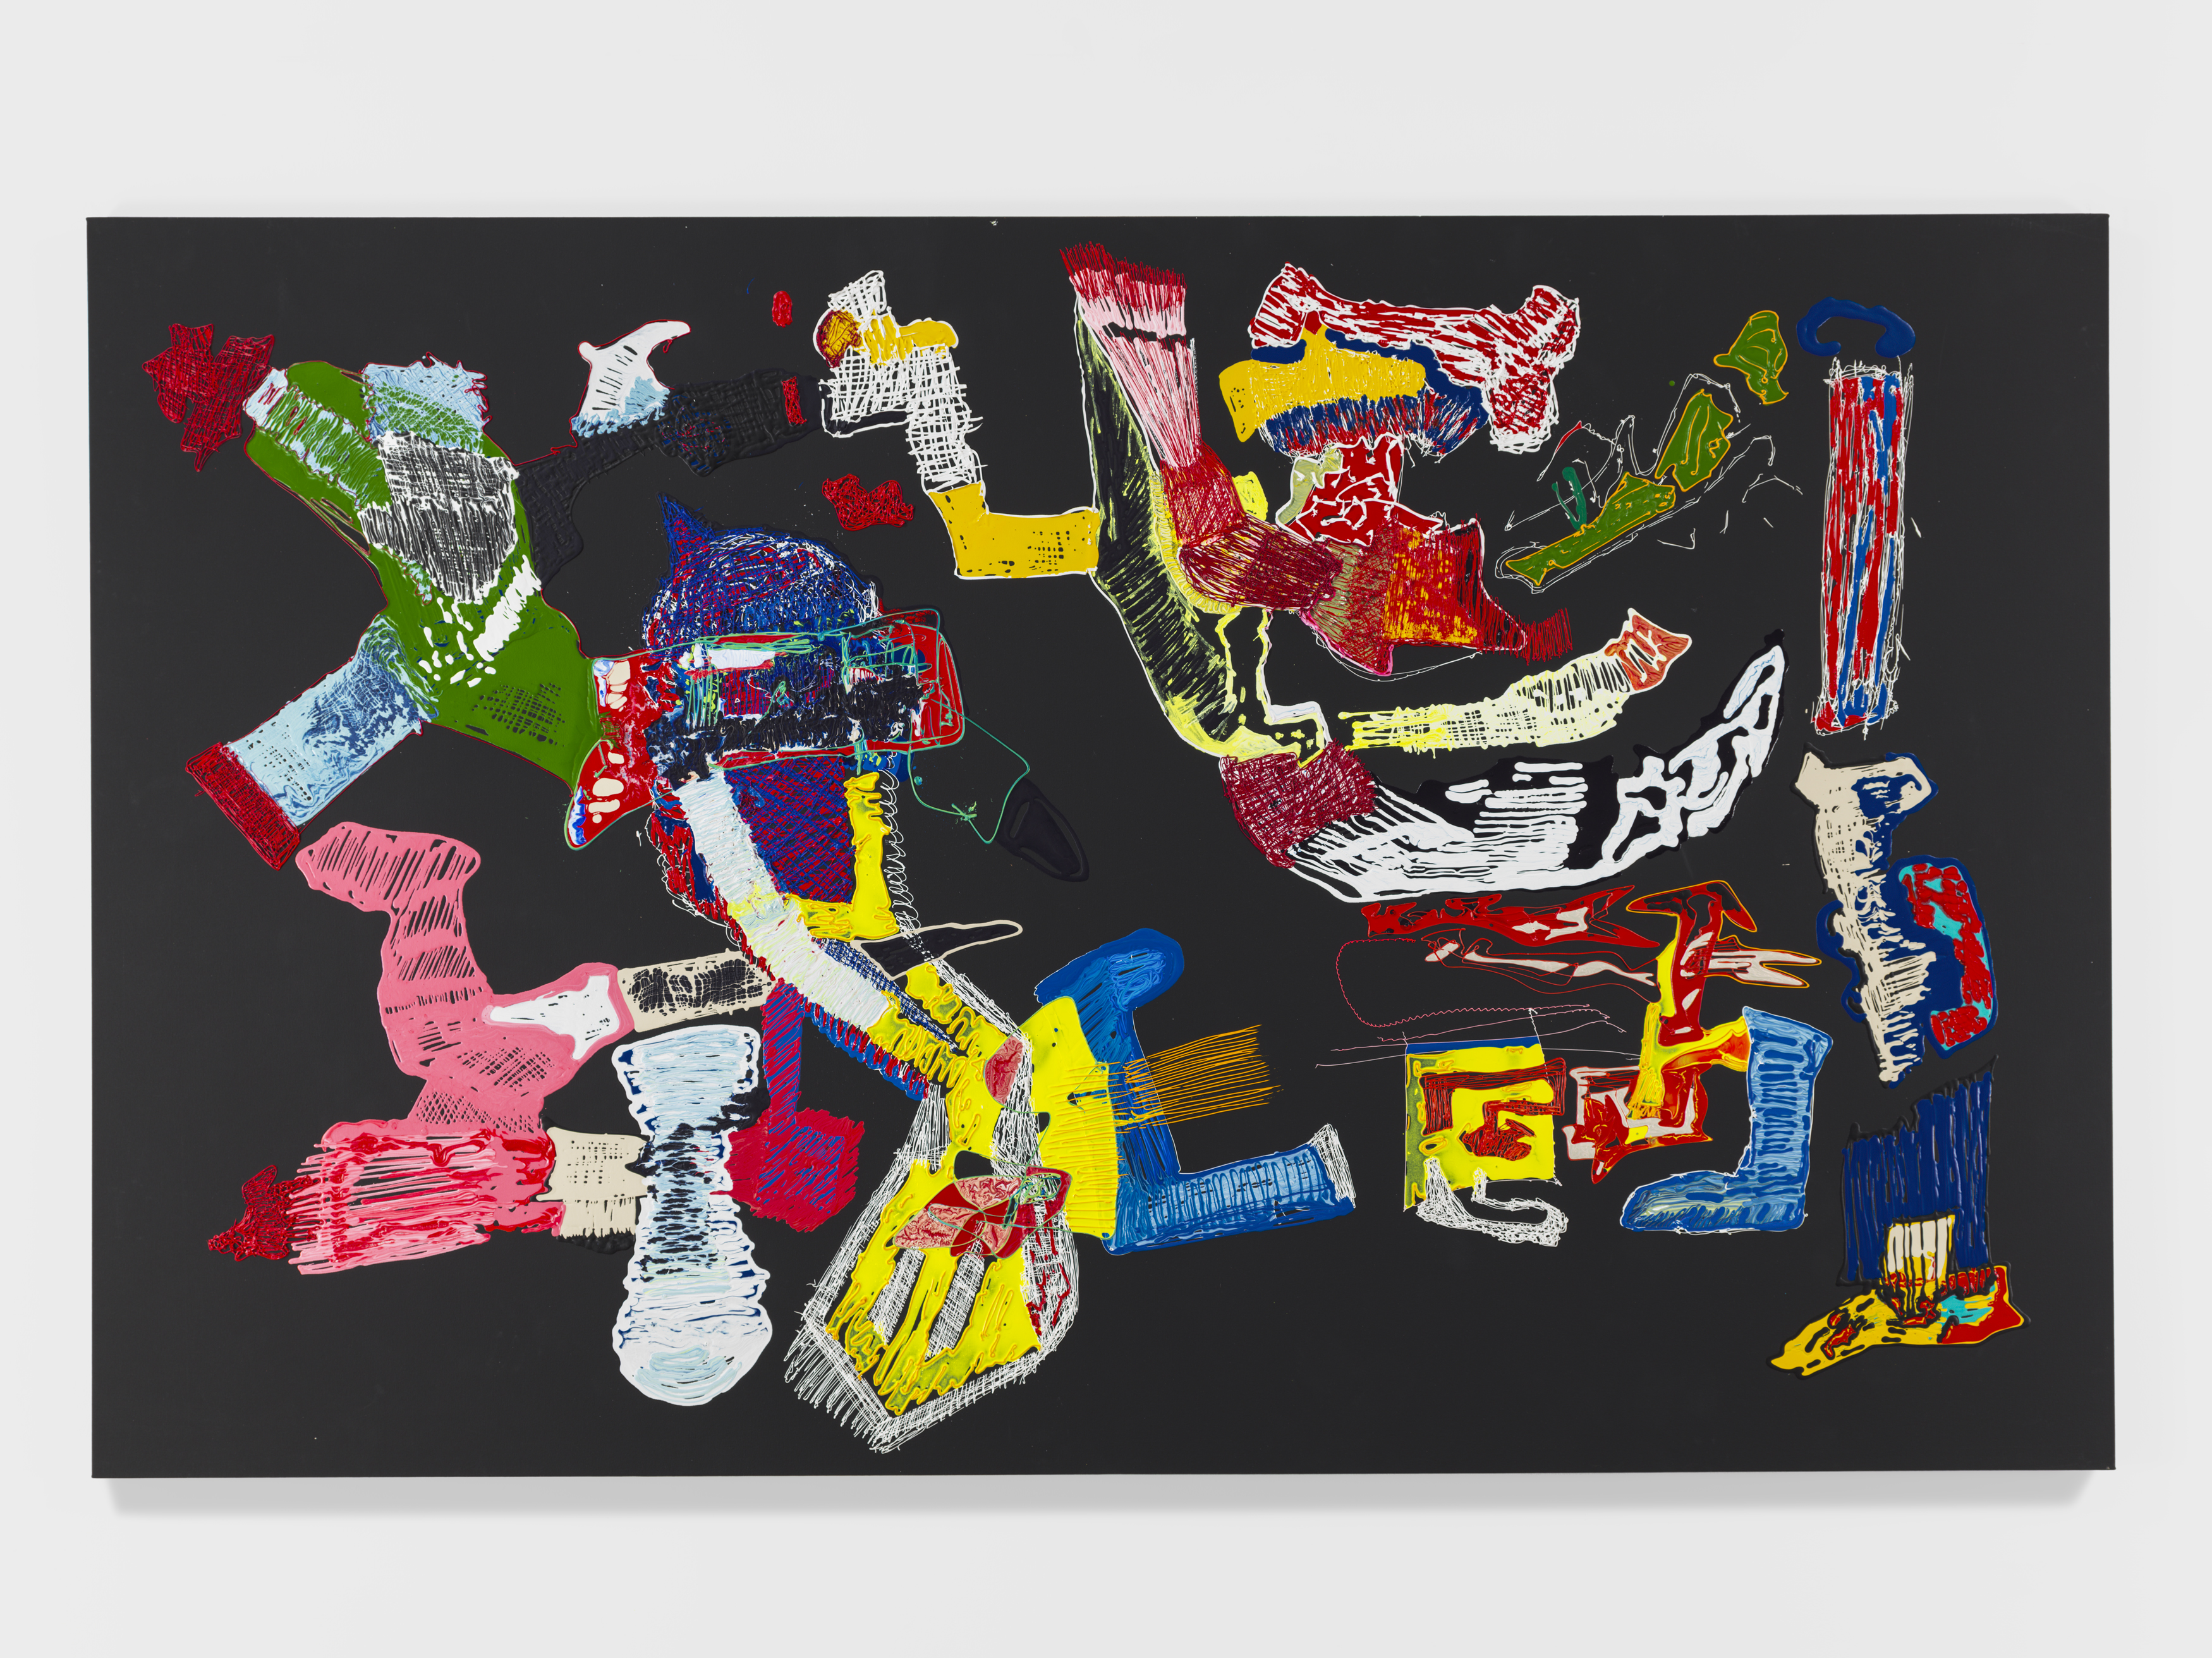 Leelee Kimmel Pound, 2018 Acrylic on canvas 167.6 x 269.2 cm (66 x 106 in.) (SLG-LK-10412) Courtesy of the artist and Simon Lee Gallery